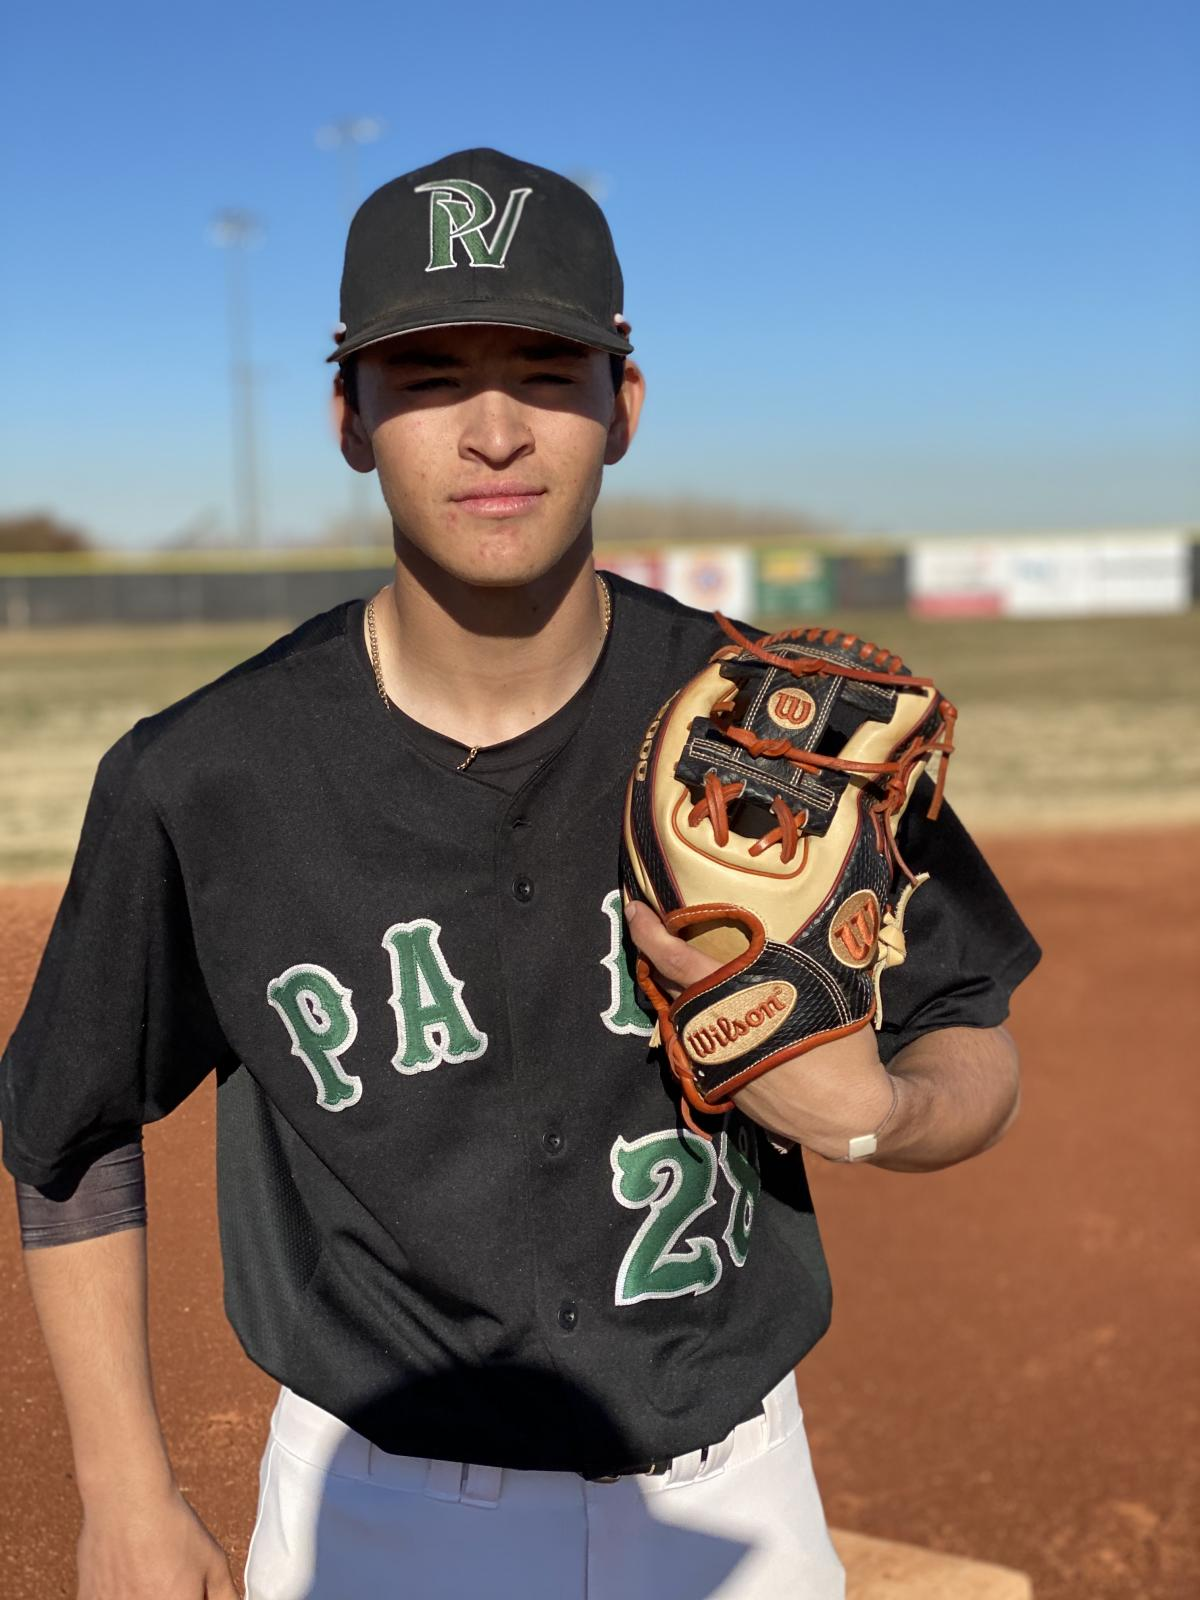 Palo shows strong pitching in 5-3 win over Boulder City